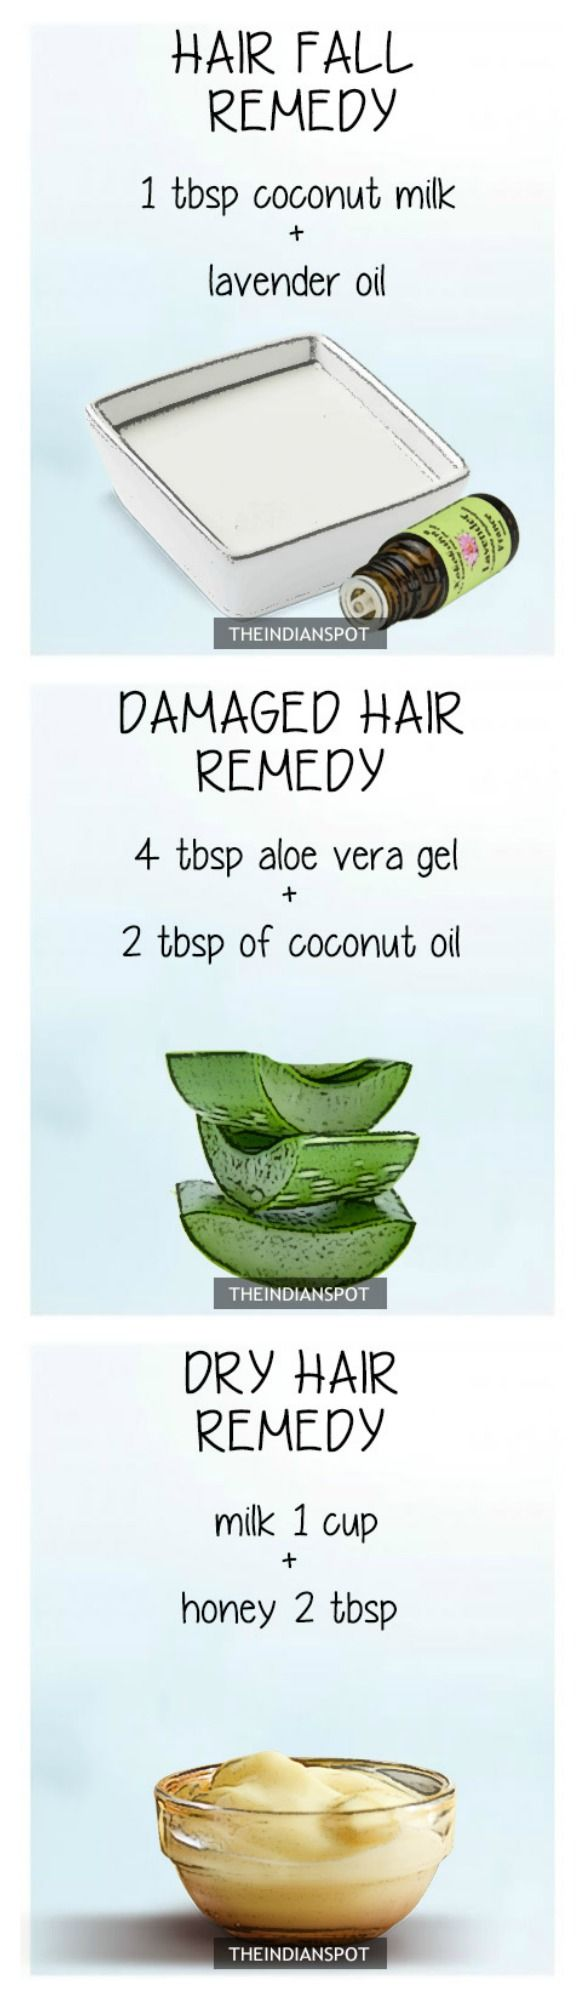 REMEDIES FOR EVERY HAIR PROBLEM